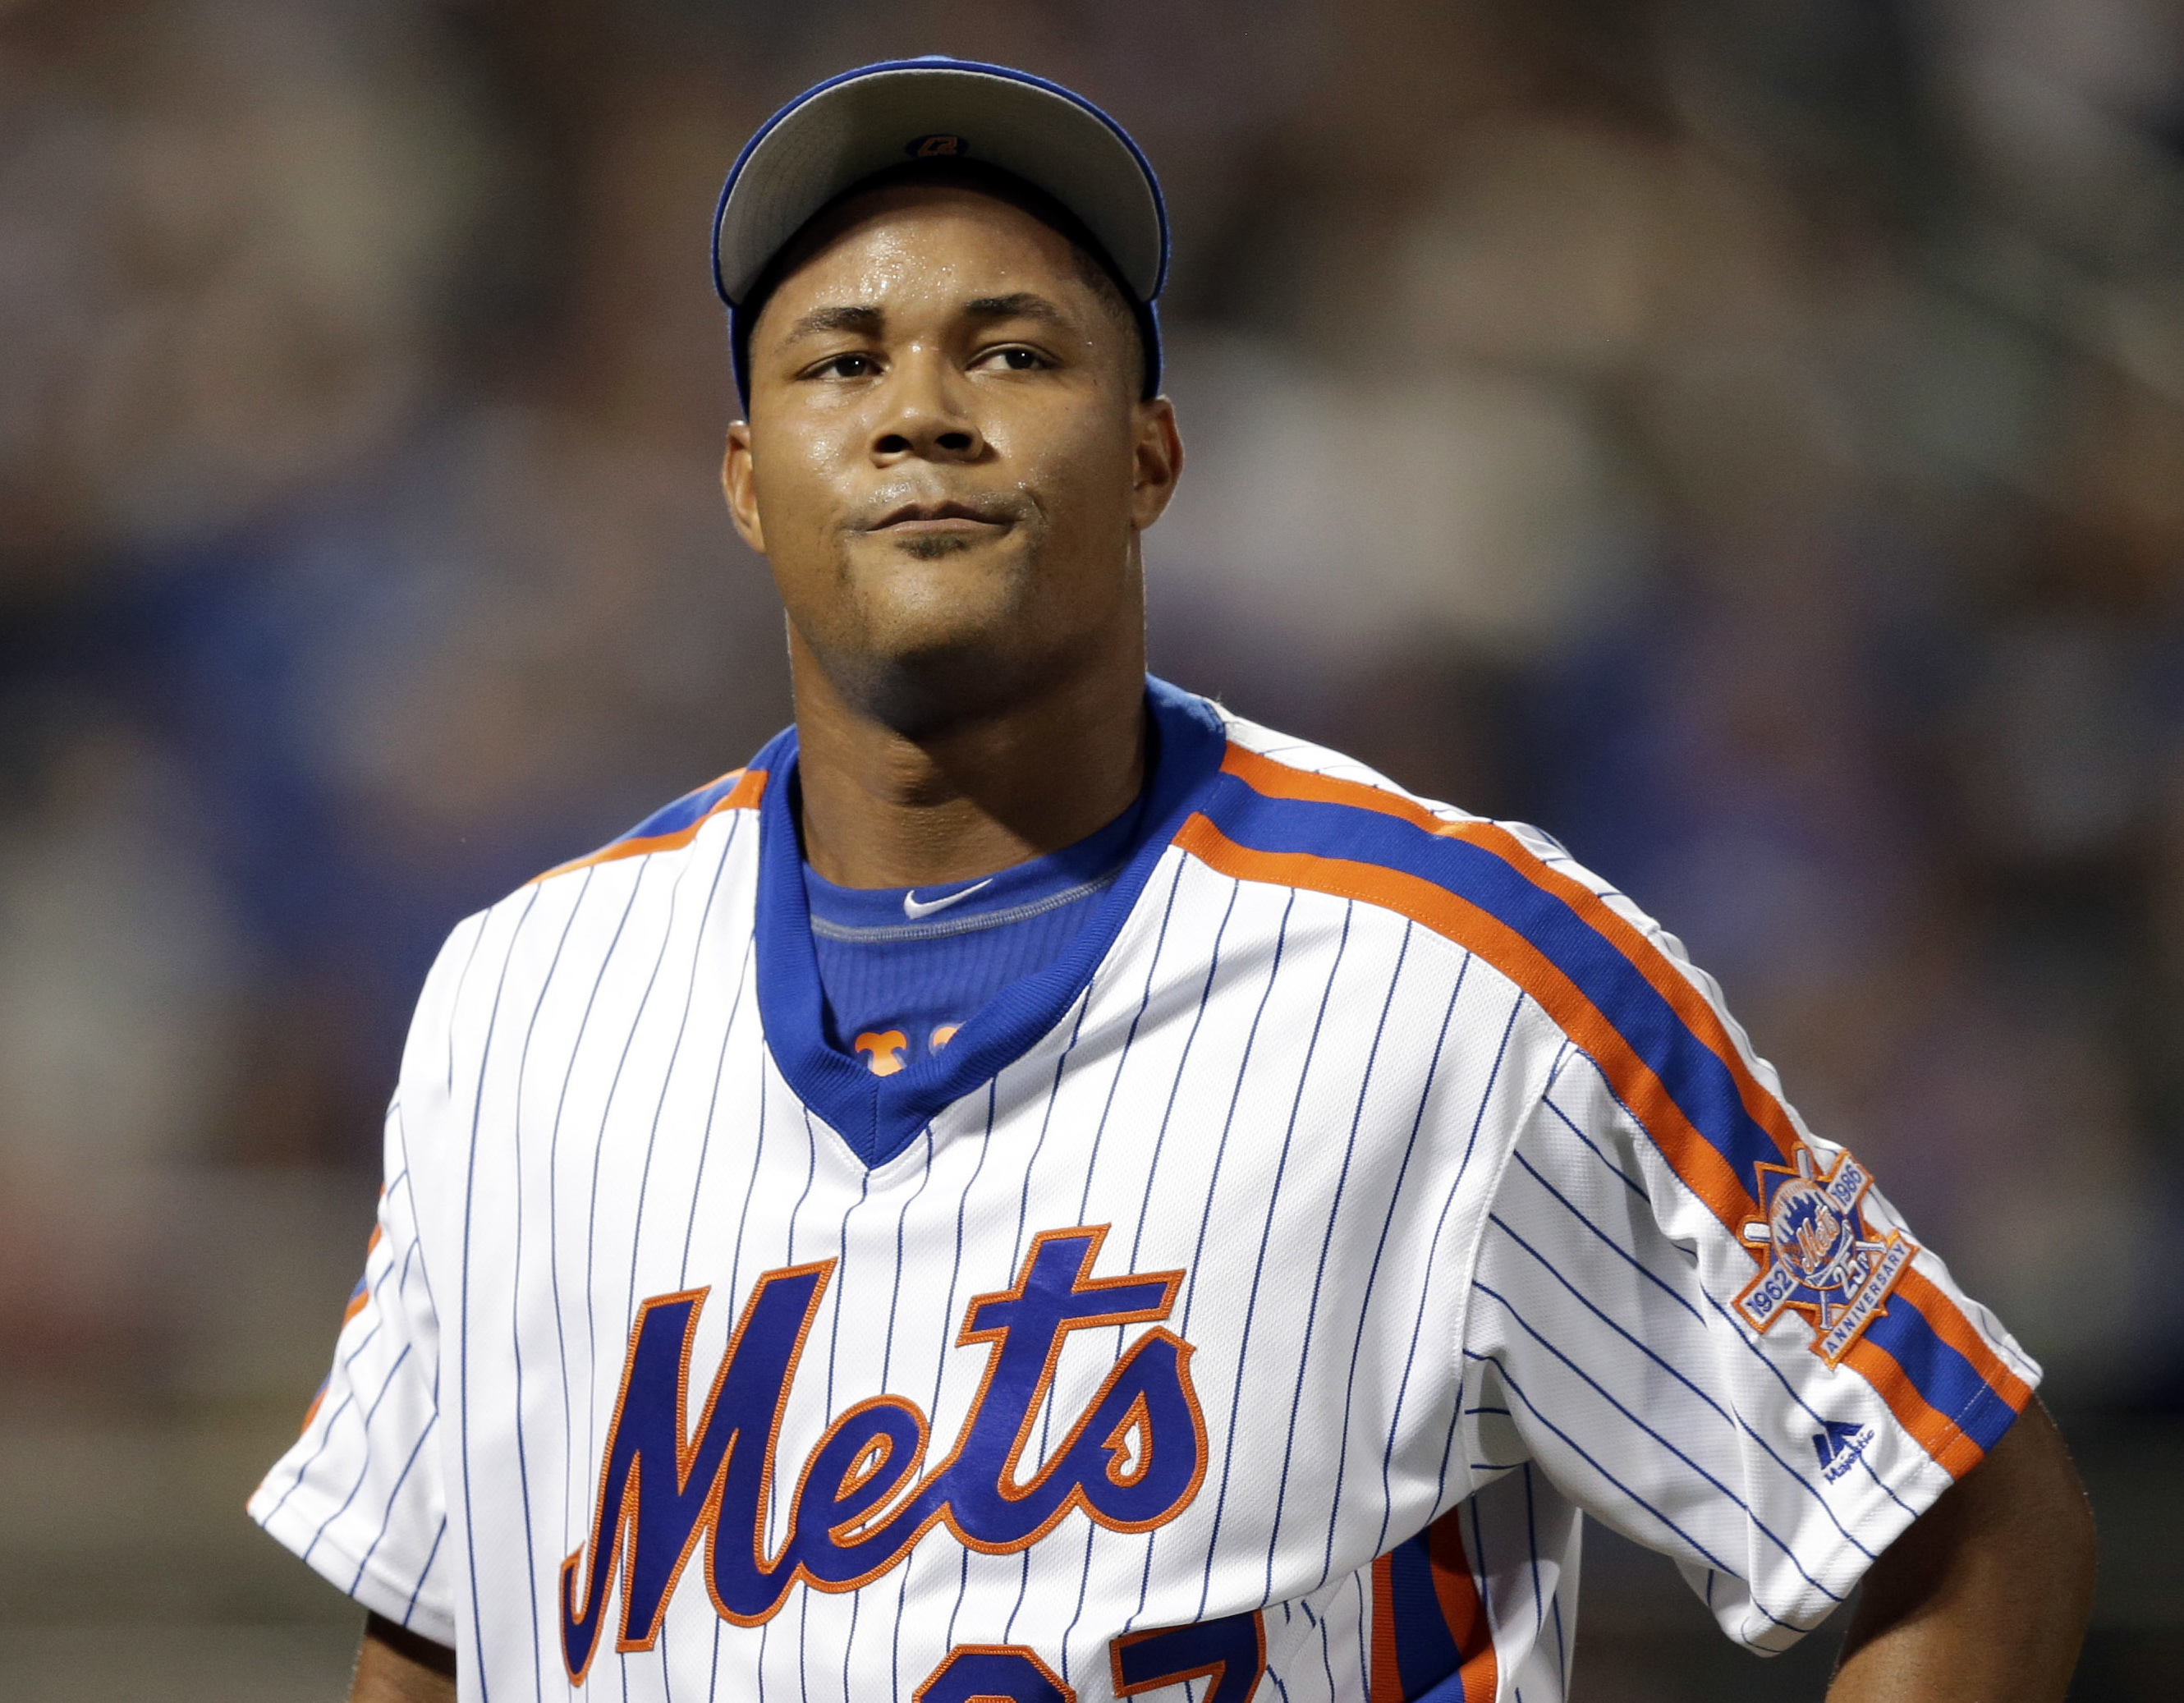 FILE - In this May 29, 2016, file photo, New York Mets relief pitcher Jeurys Familia reacts as walks off the field during the ninth inning of the baseball game against the Los Angeles Dodgers at Citi Field in New York. Familia, featured in a new anti-dome